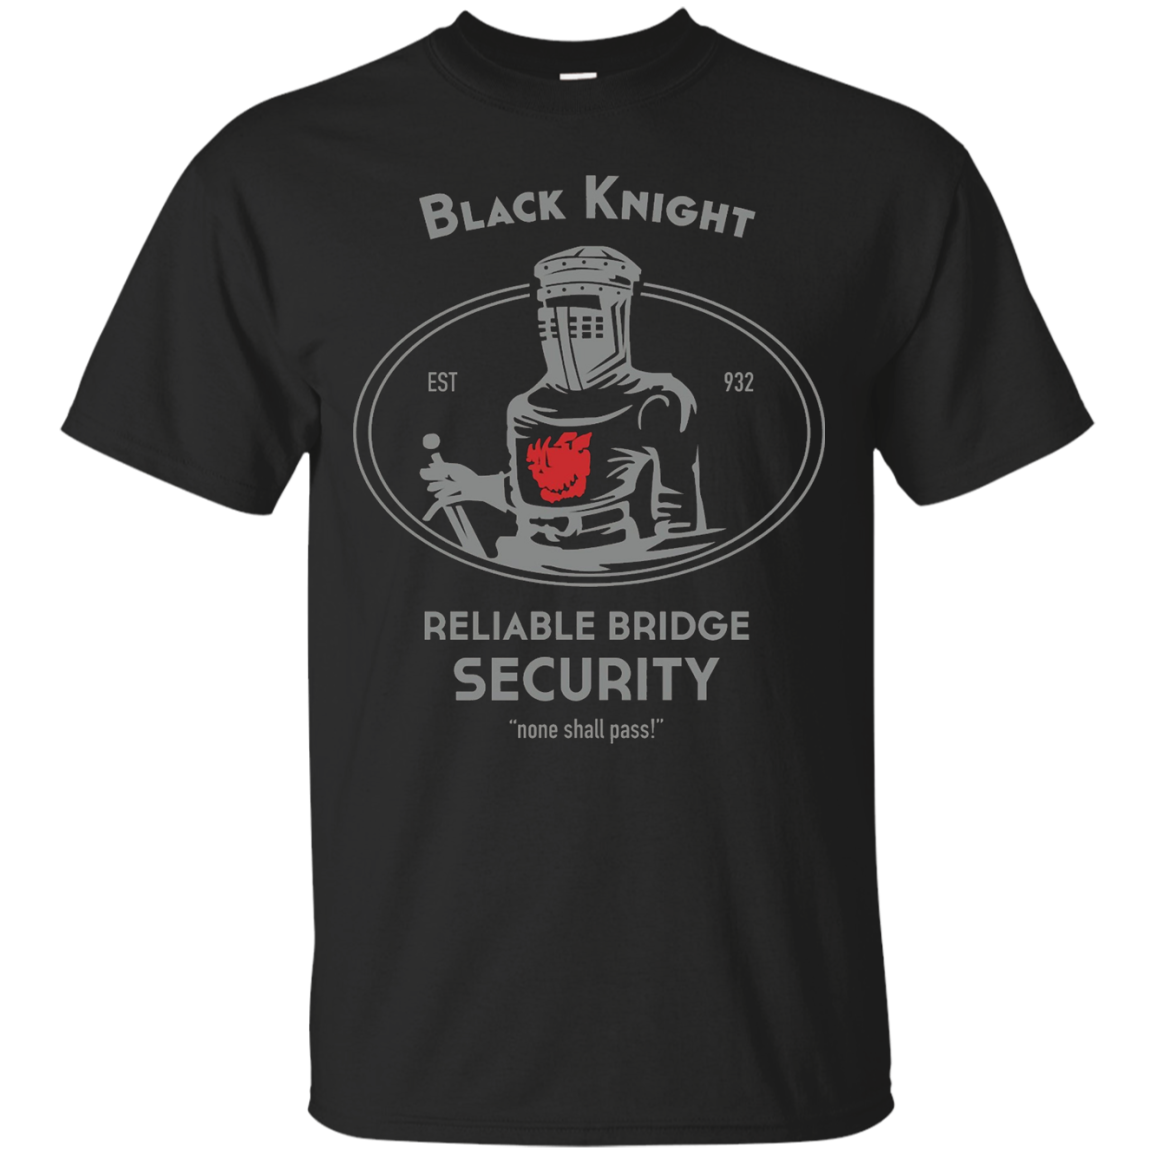 Black Knight Reliable Bridge Security T shirt